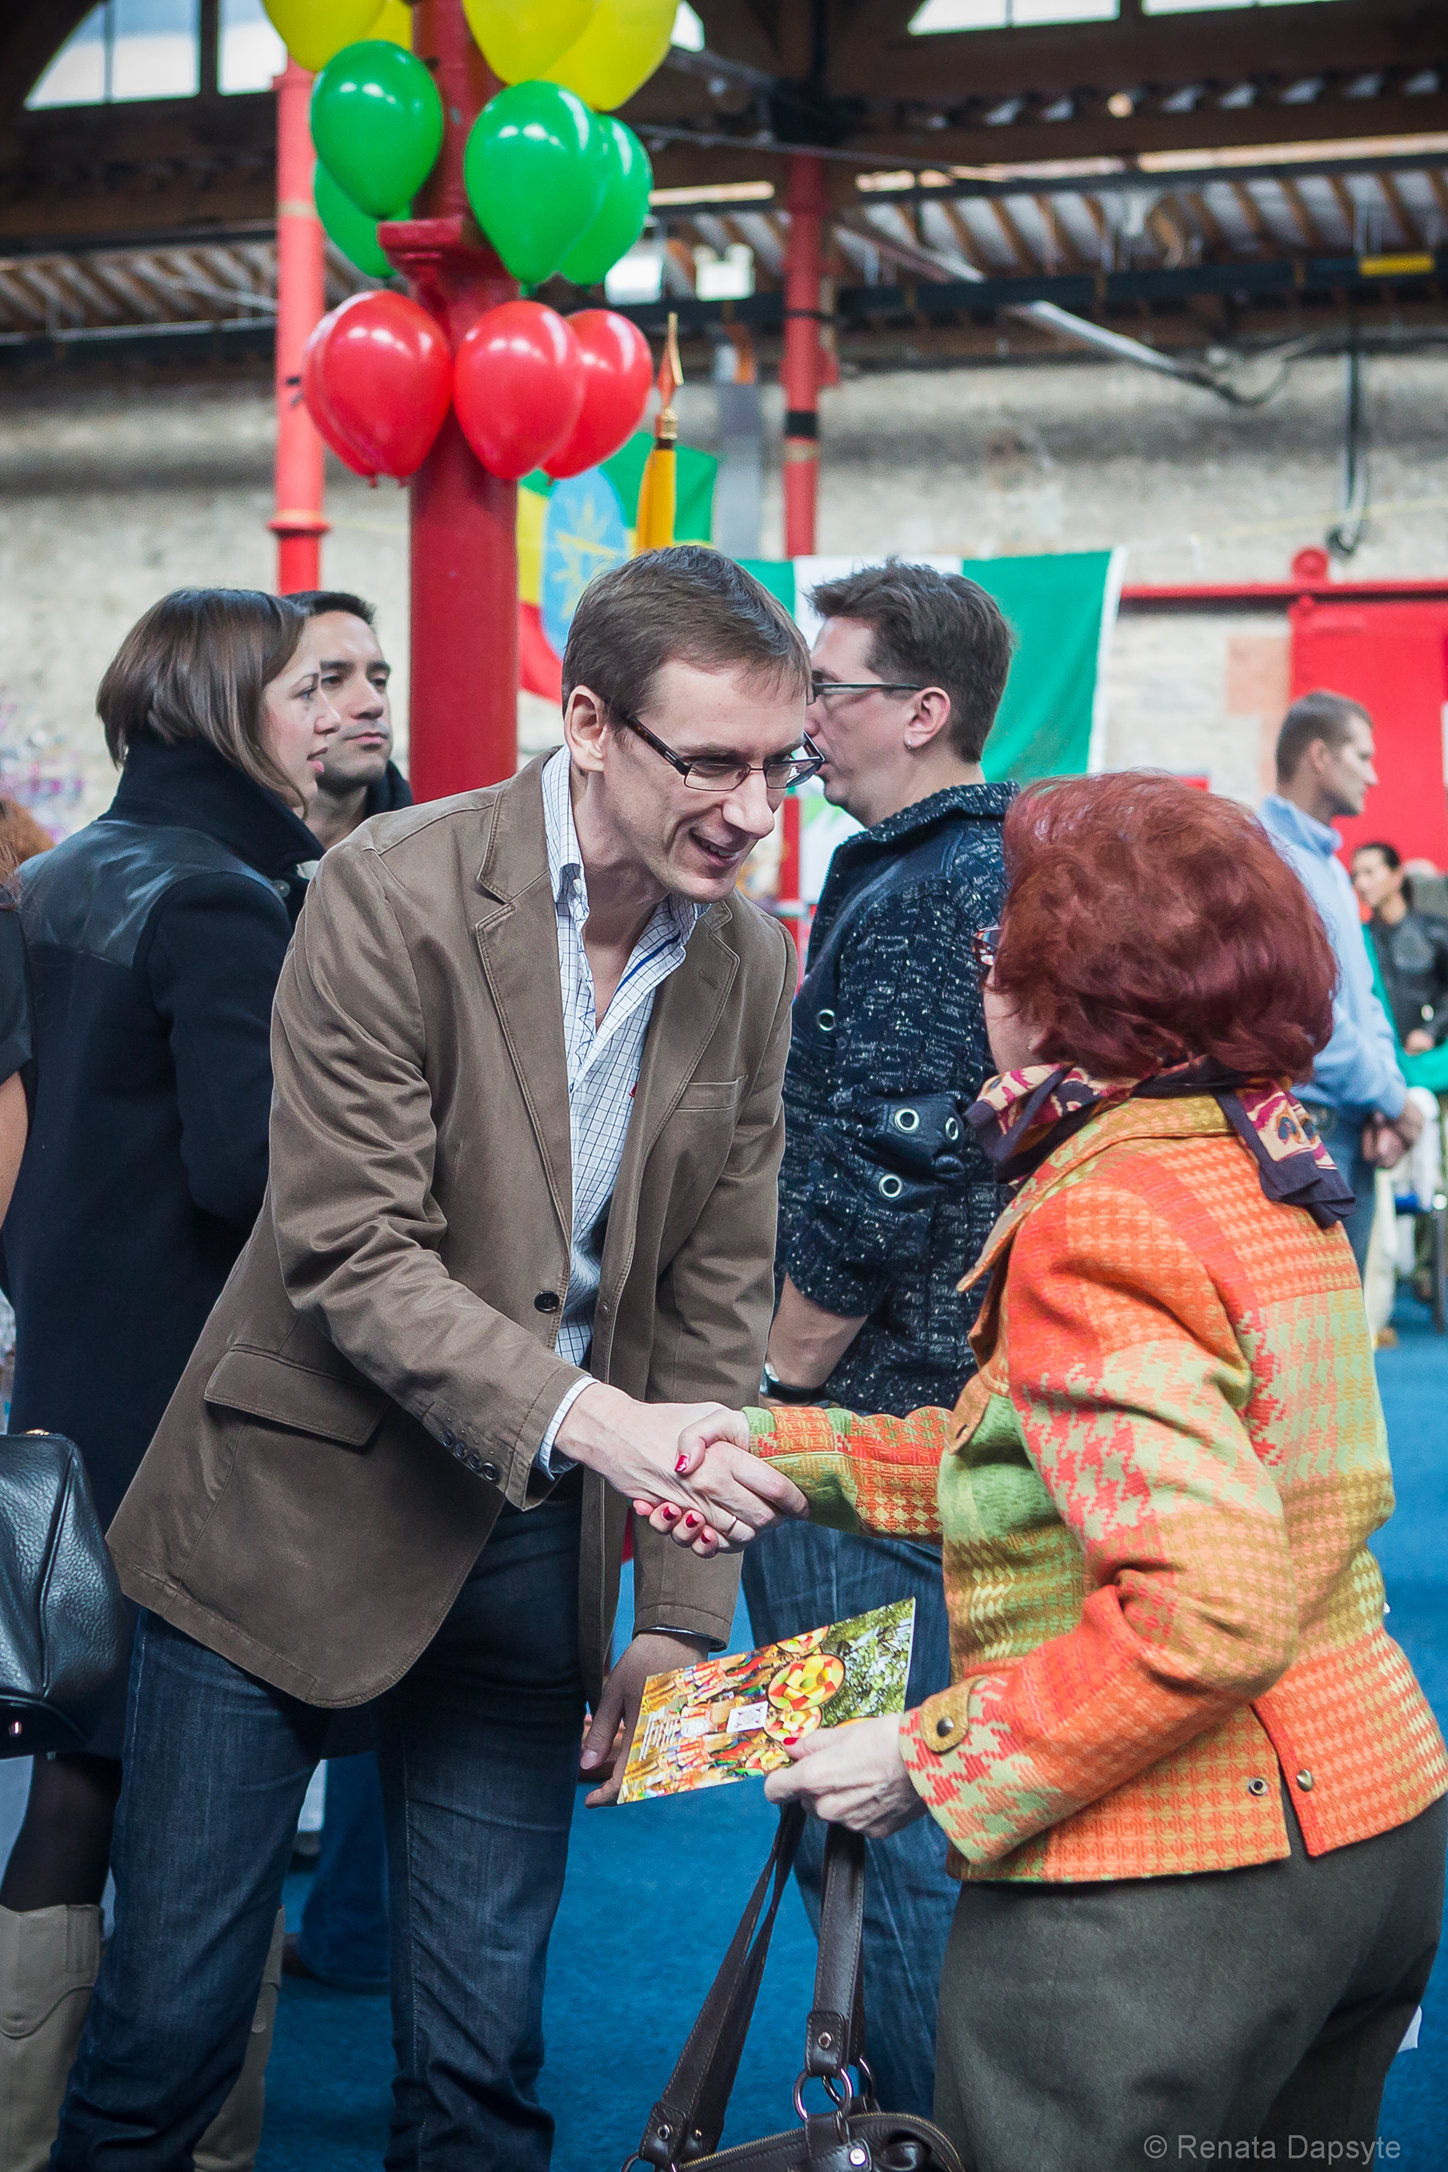 011_International Charity Bazaar Dublin 2013.JPG